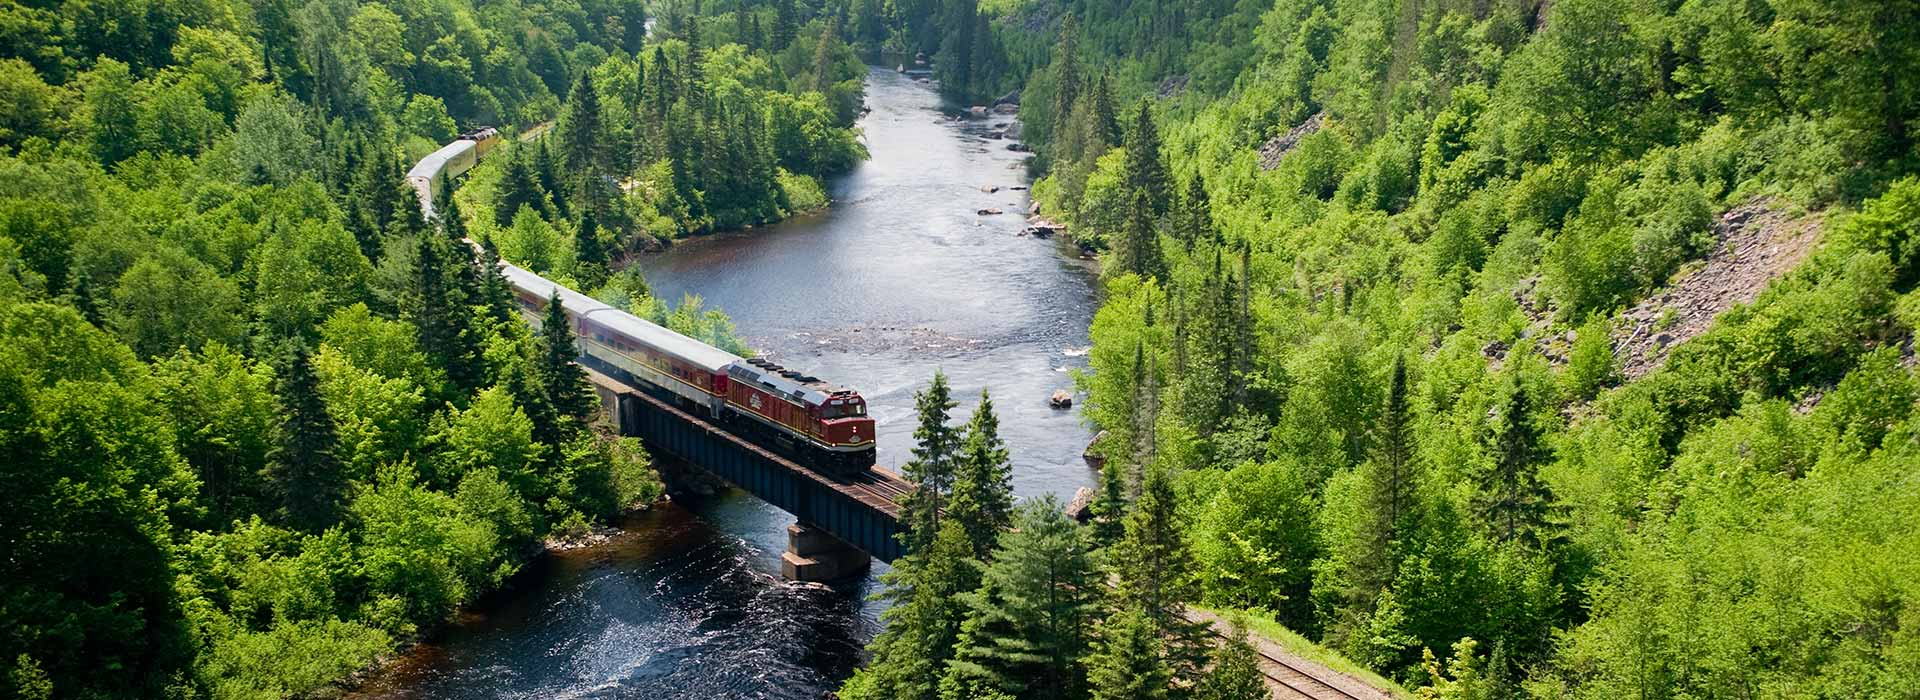 Attraction In Algoma Northern Ontario Canada - 10 things to see and do in the algoma district